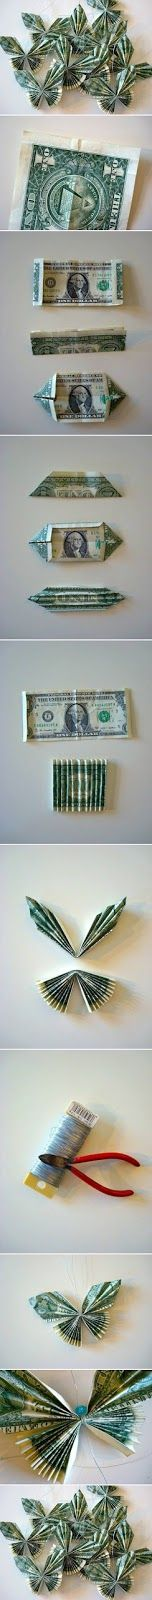 DIY Money Bill Butterfly - unique way to present monetary gifts.